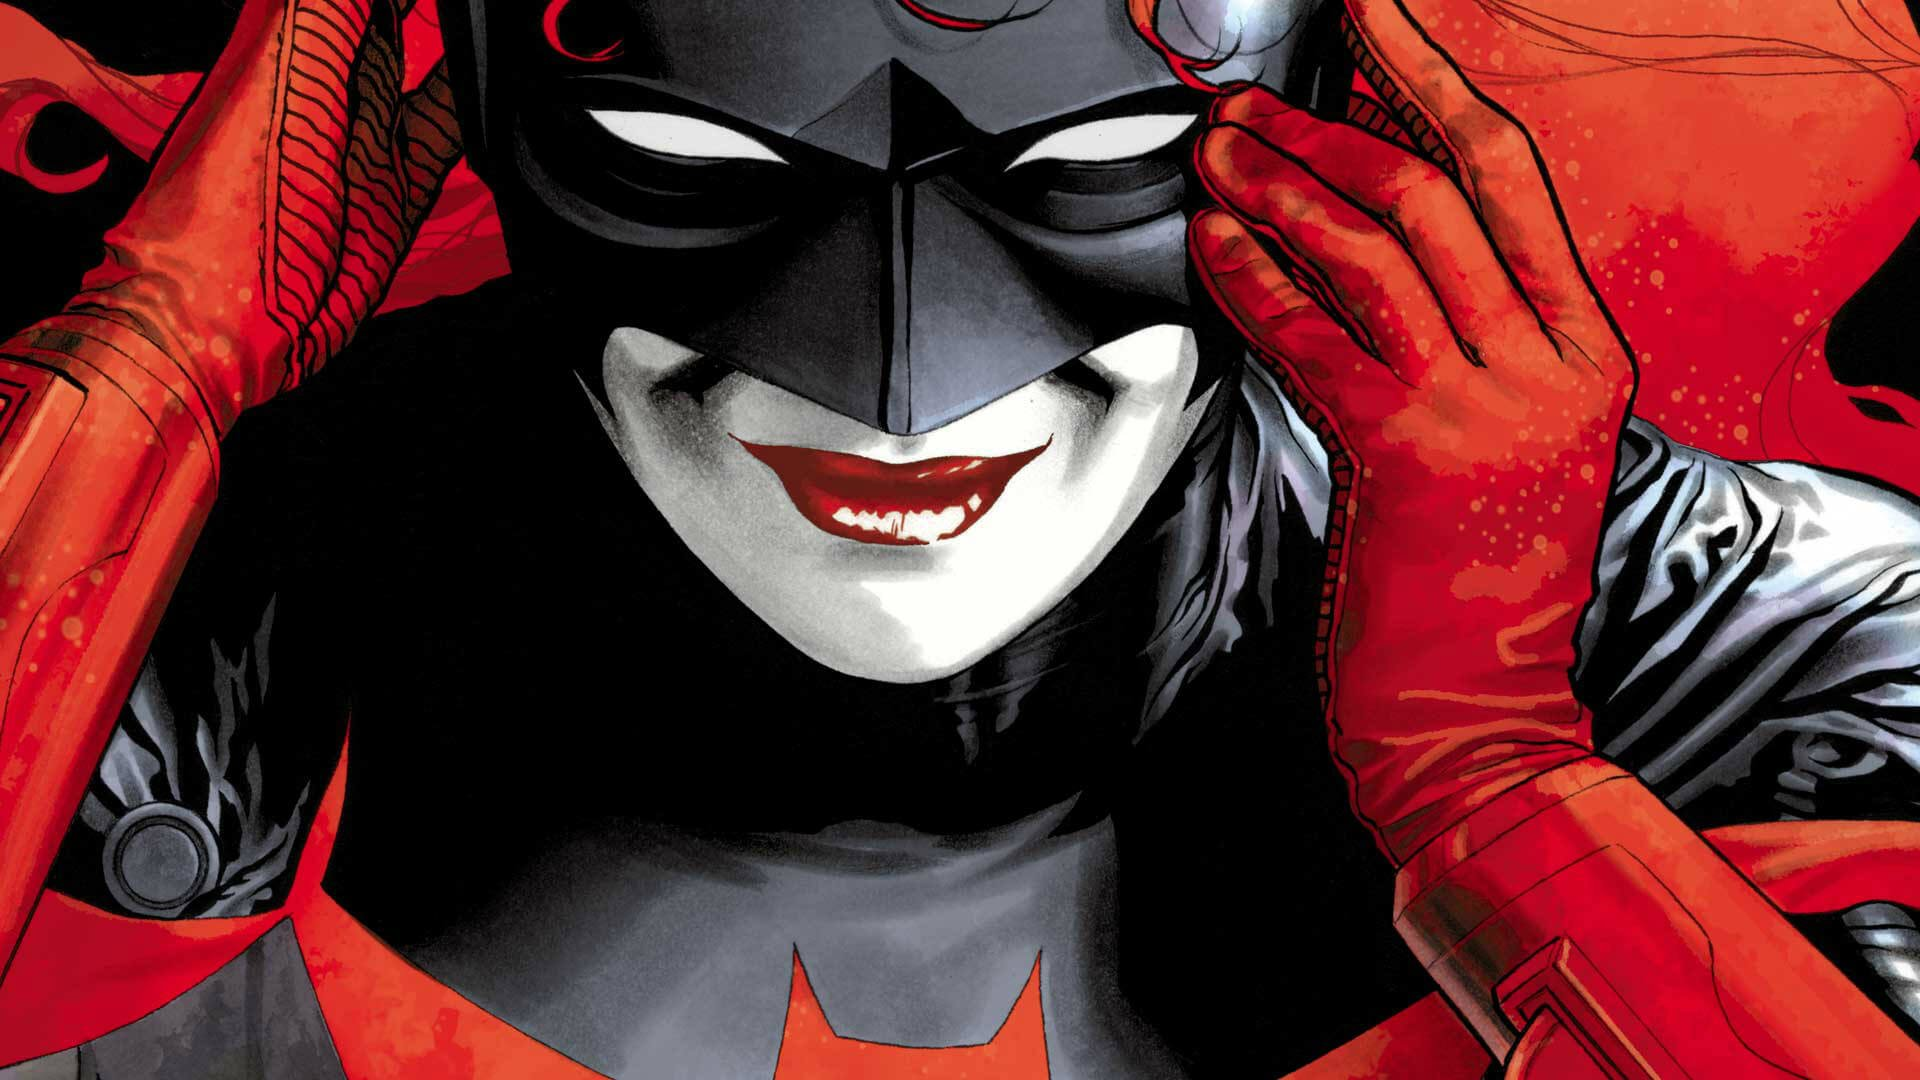 Batwoman Series in the Works at CW